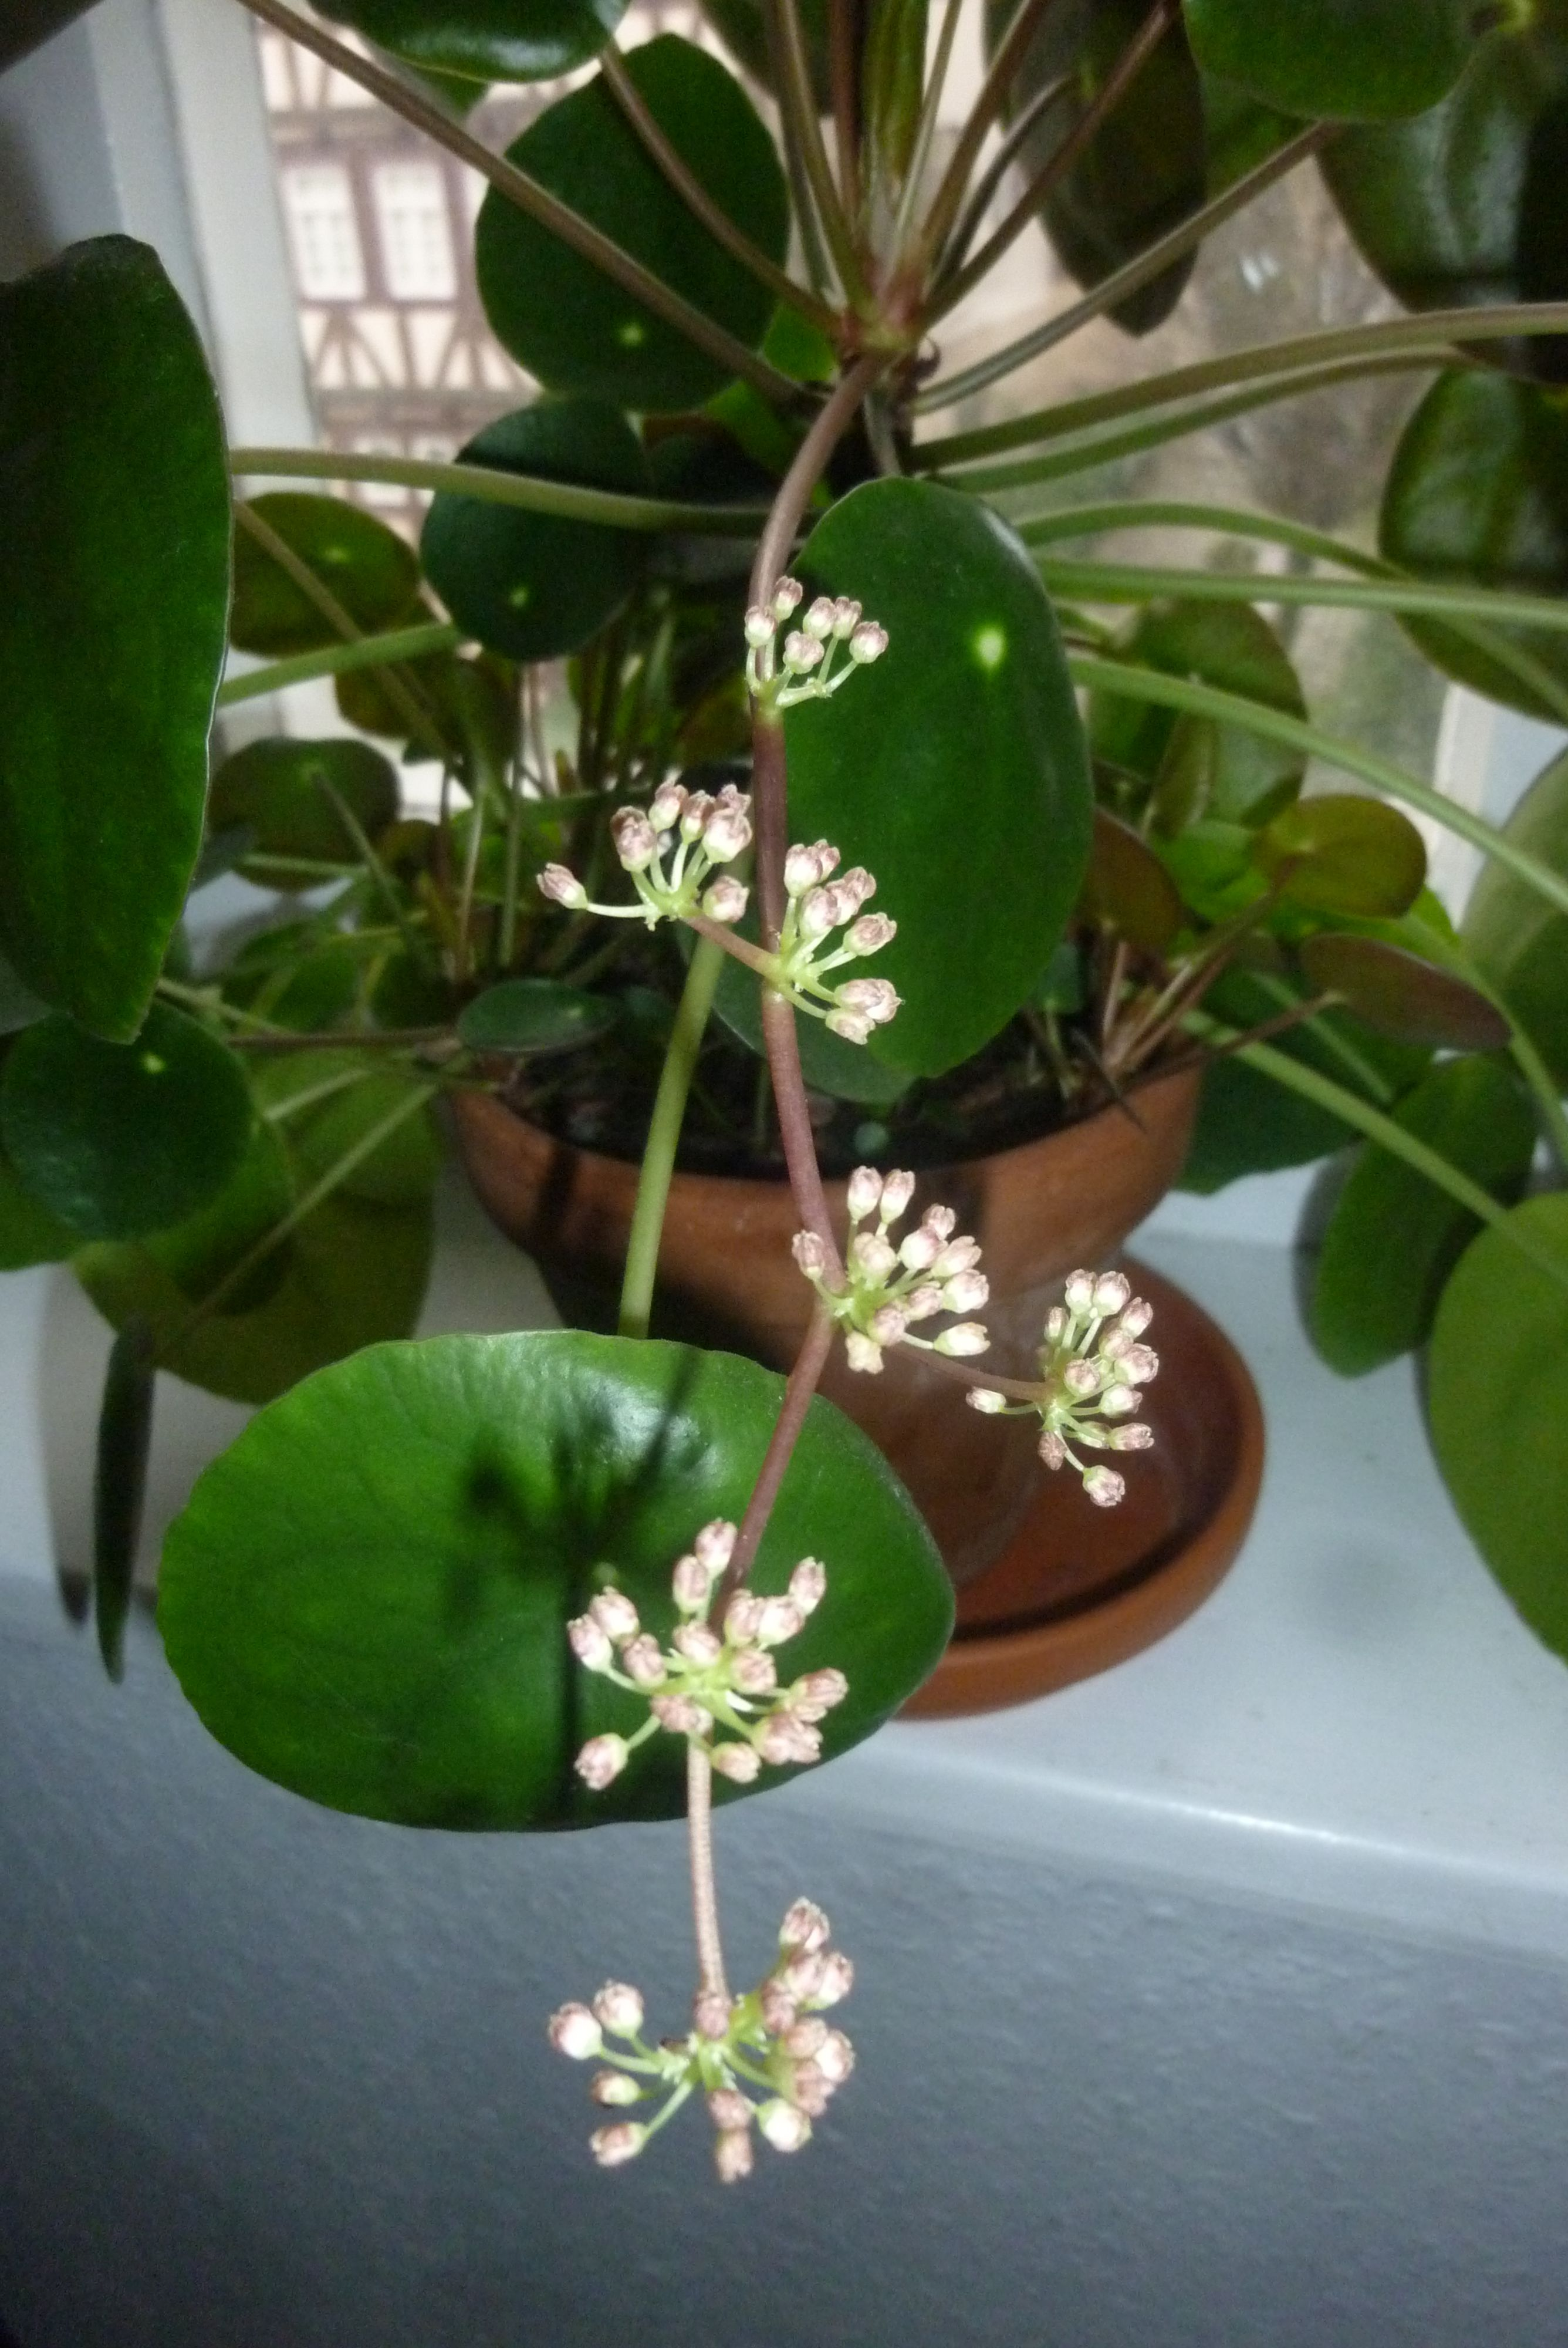 brighamia insignis care instructions